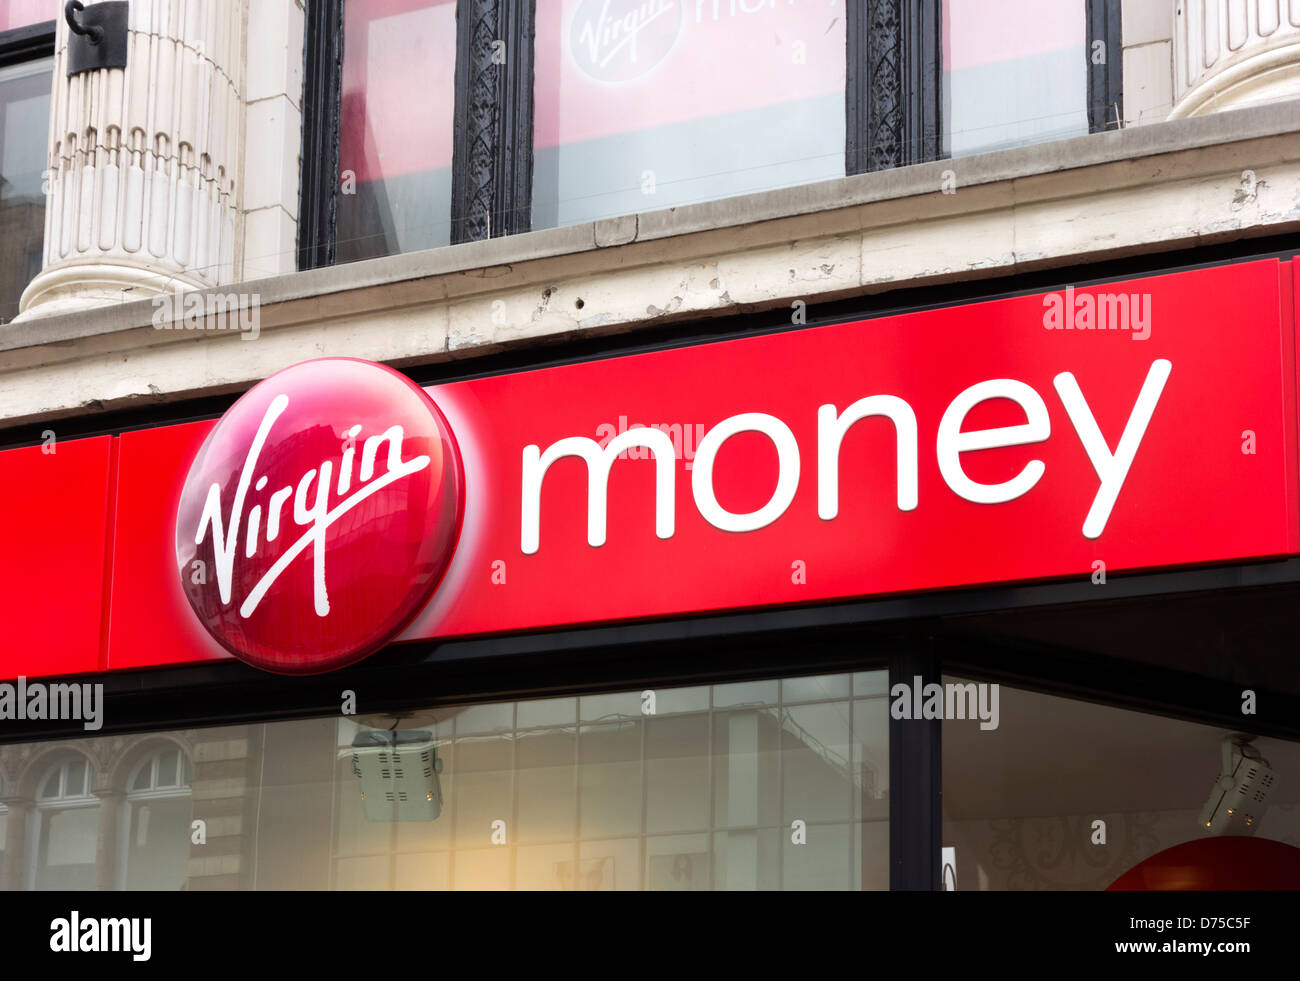 Virgin Money store on Briggate, Leeds, West Yorkshire, UK - Stock Image